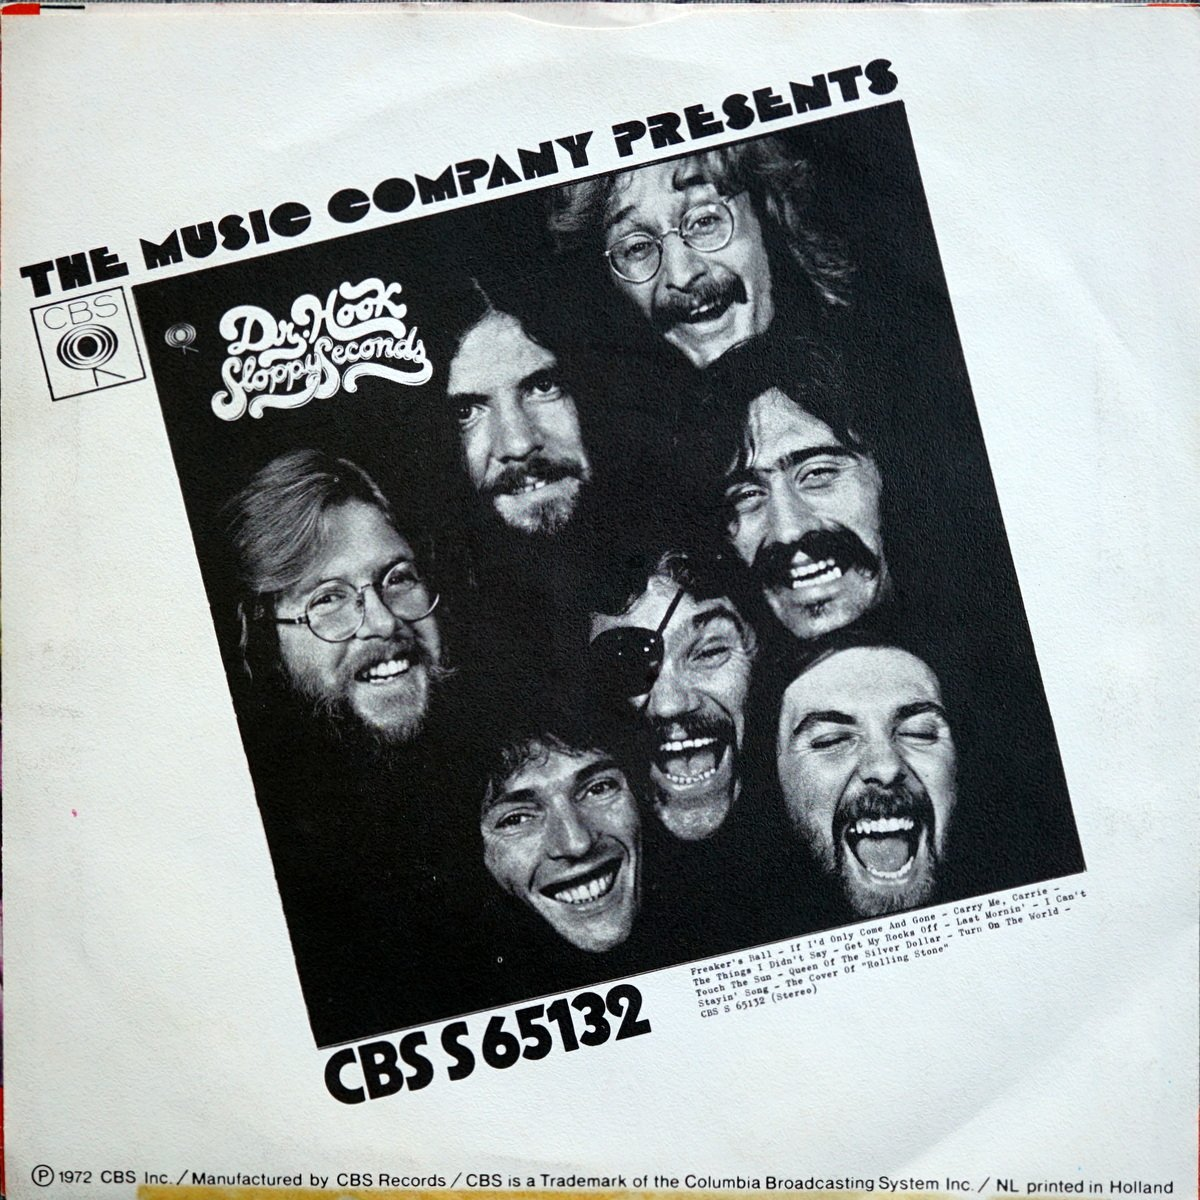 S SS B5 - CBS 1037 - The Cover Of The Rolling Stone - 1972 - DE - 2